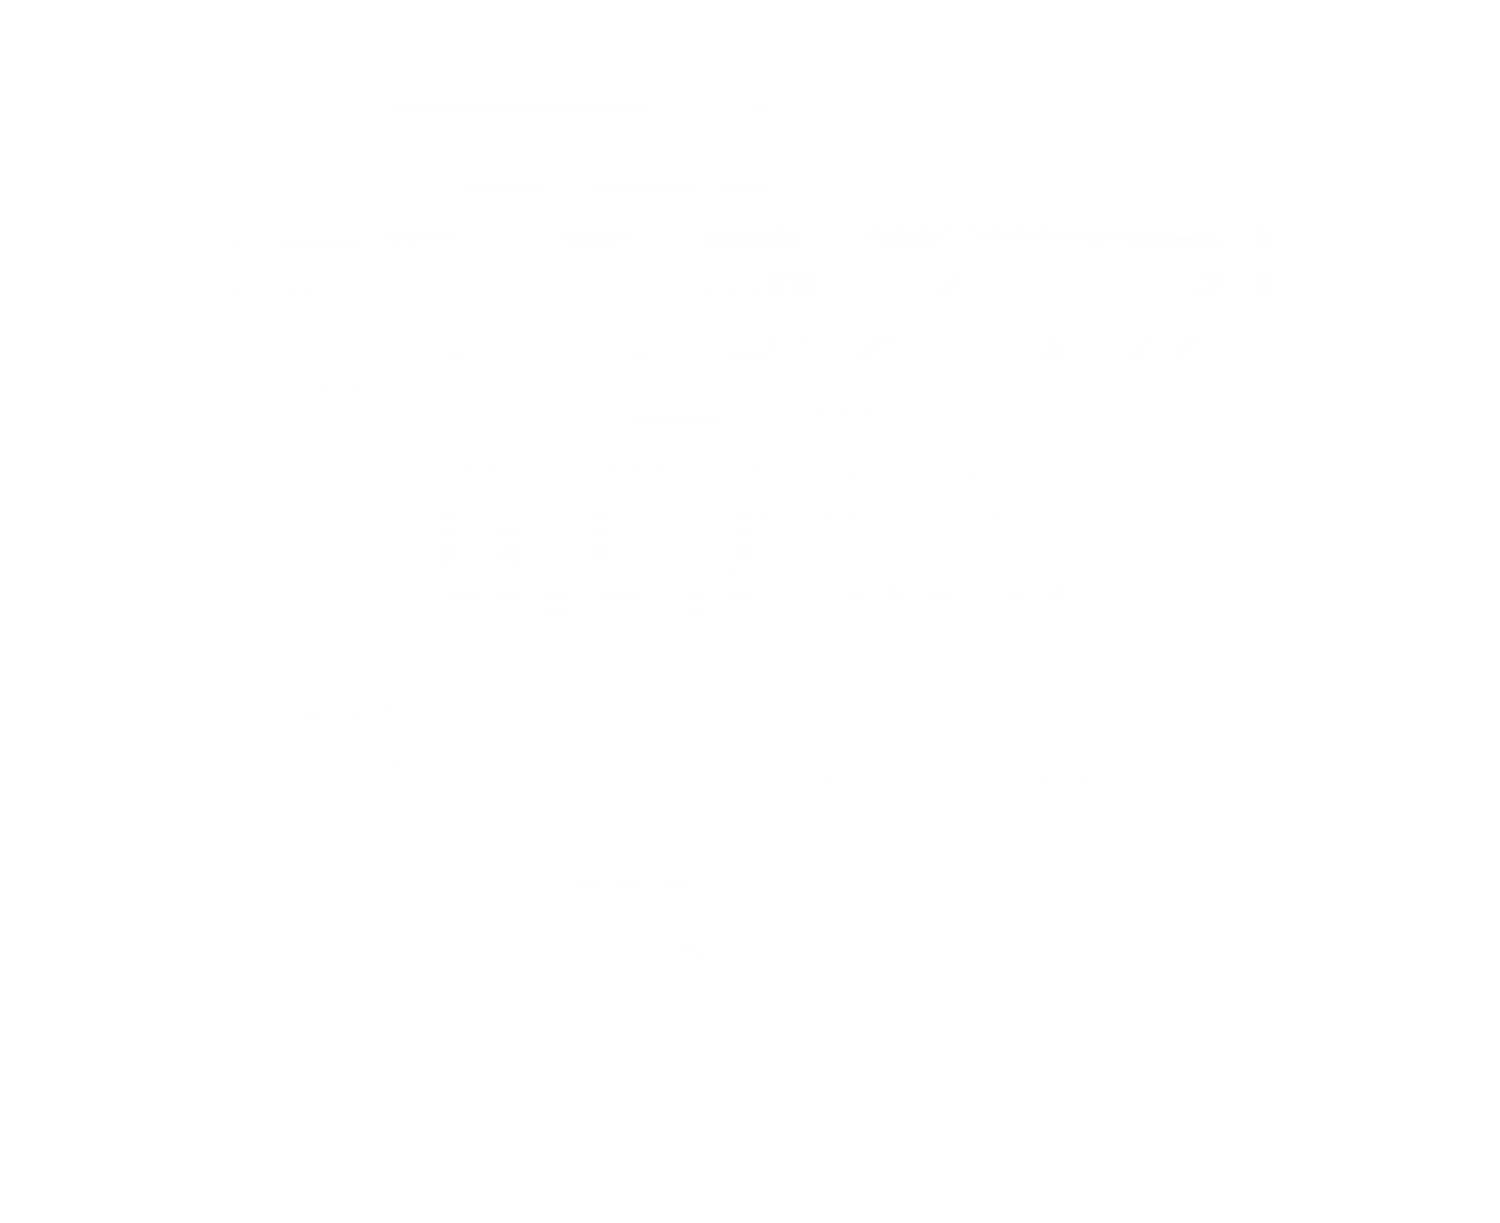 Gulf Coast Metal Alliance